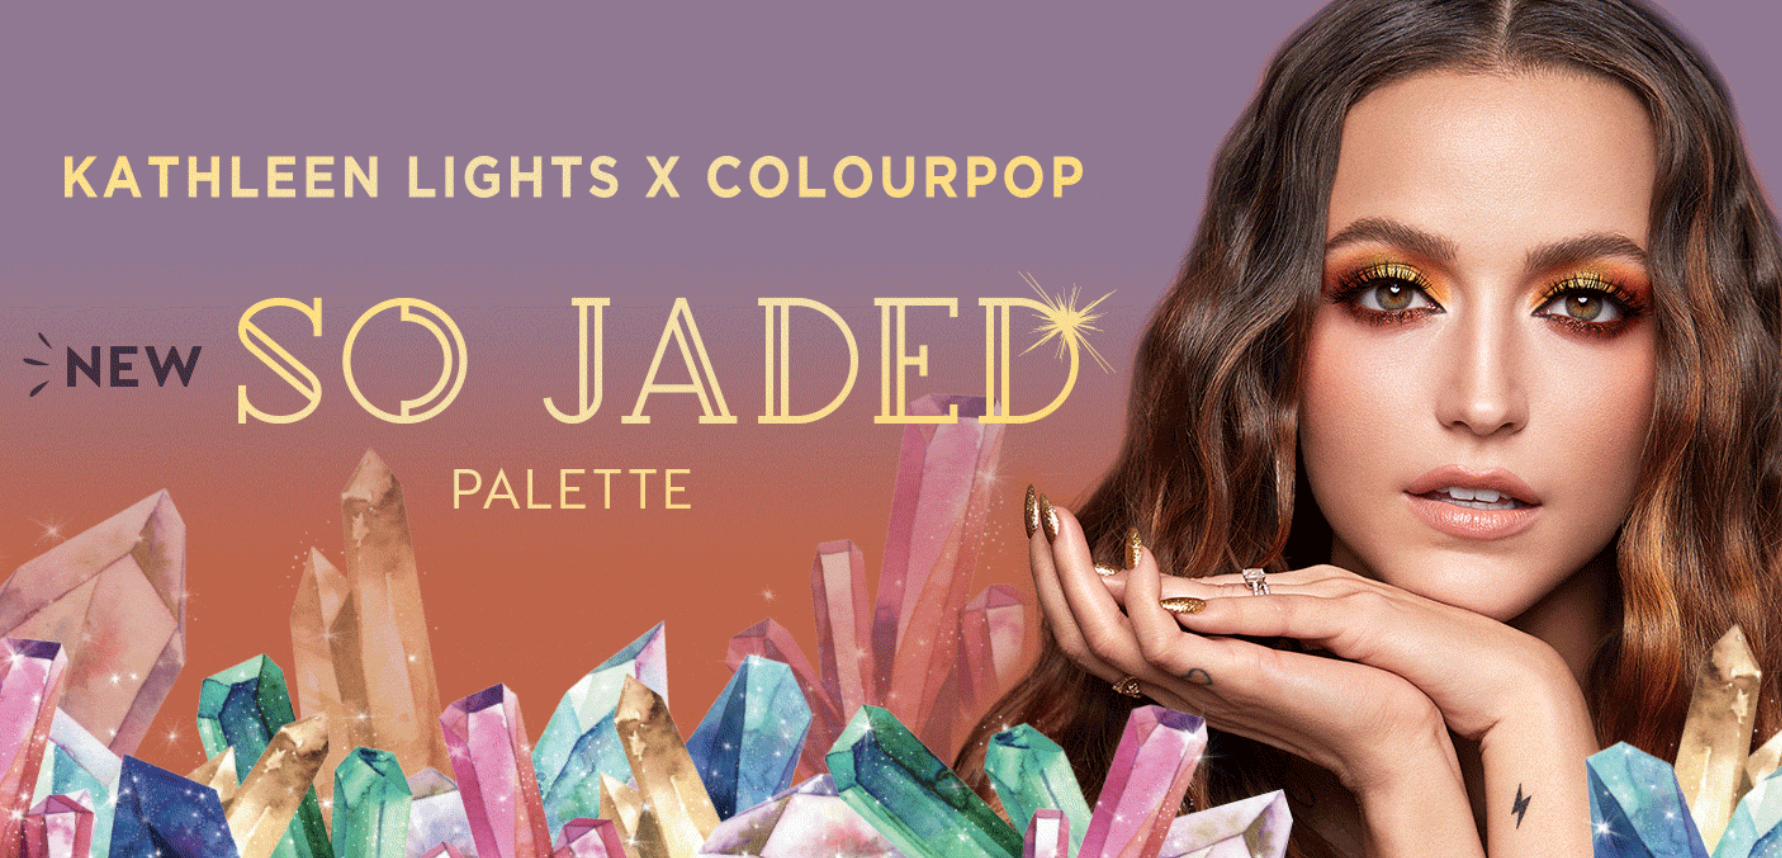 An advertisement for ColourPop's So Jaded palette collaboration with influencer KathleenLights.